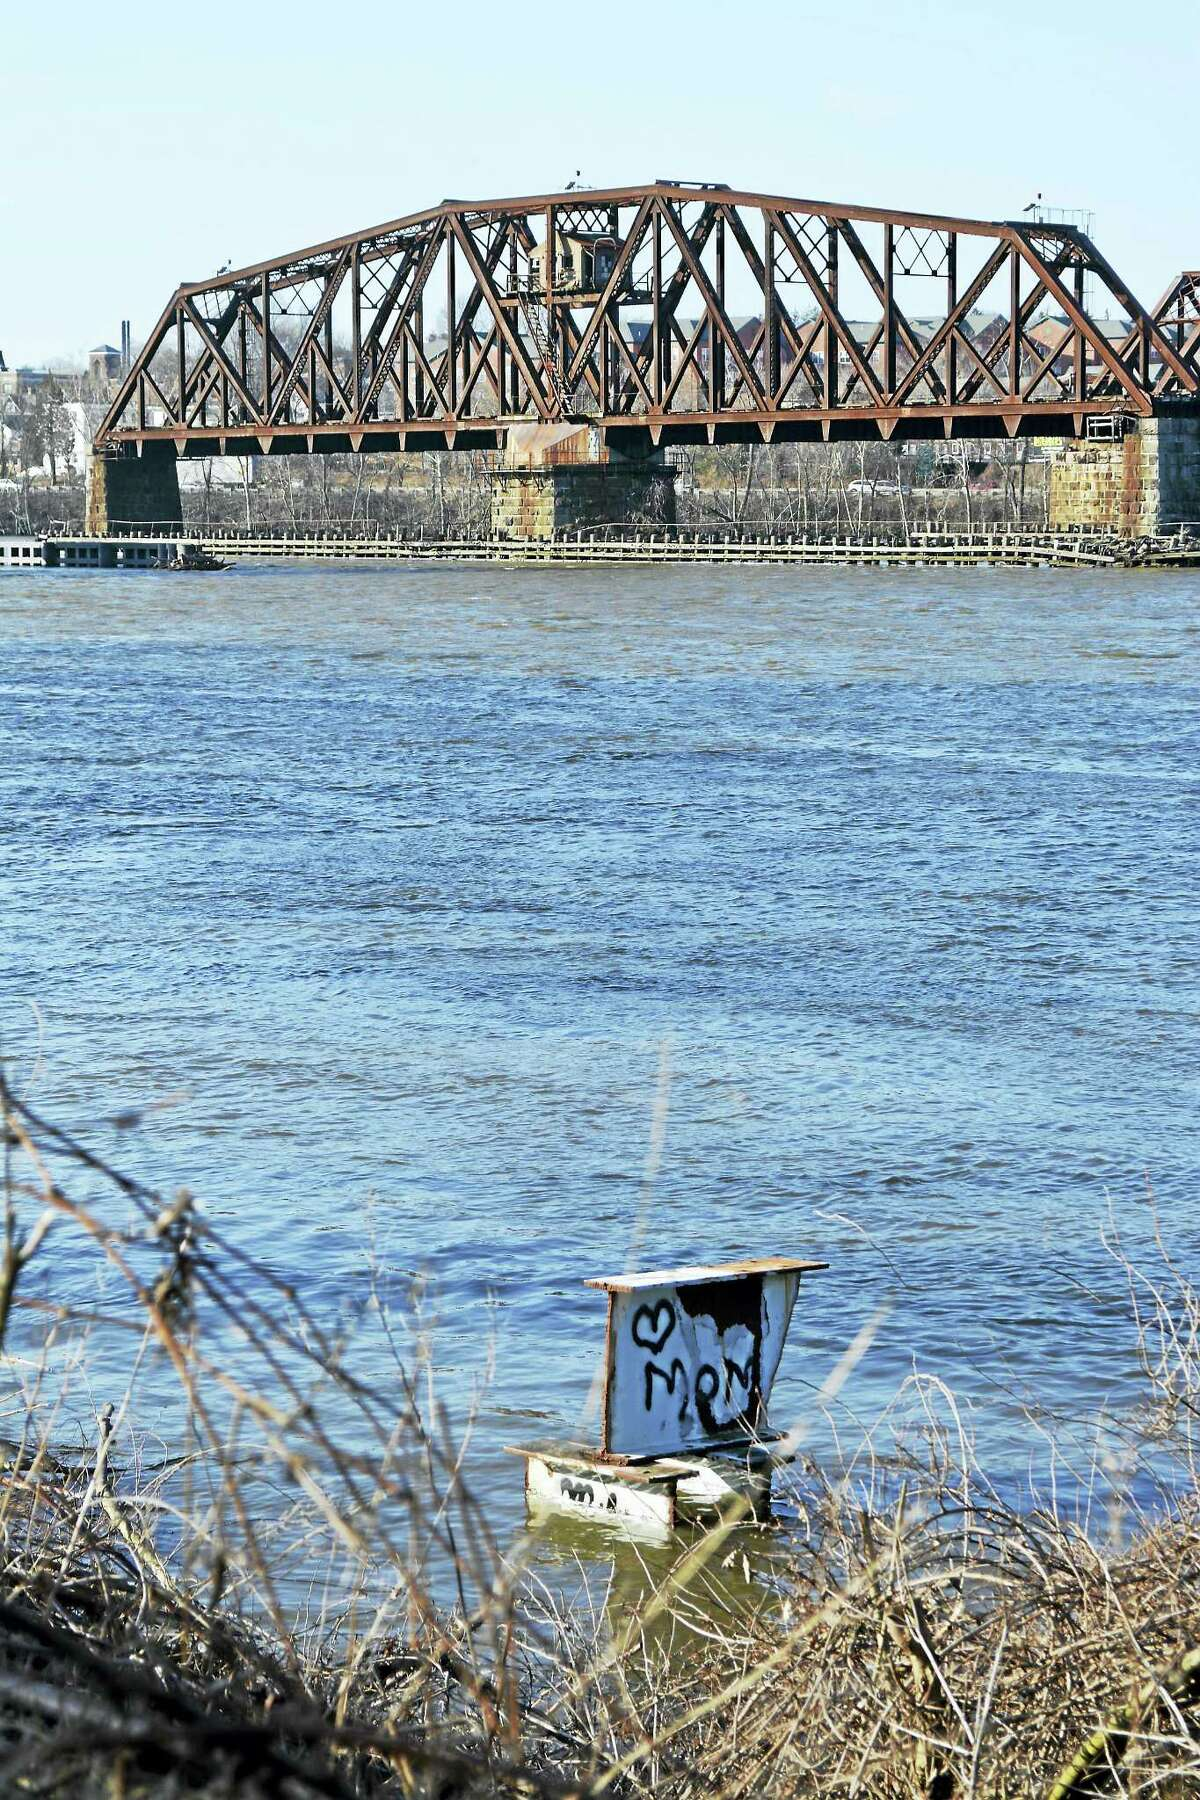 The railroad bridge that spans the Connecticut River as seen from the Portland side.